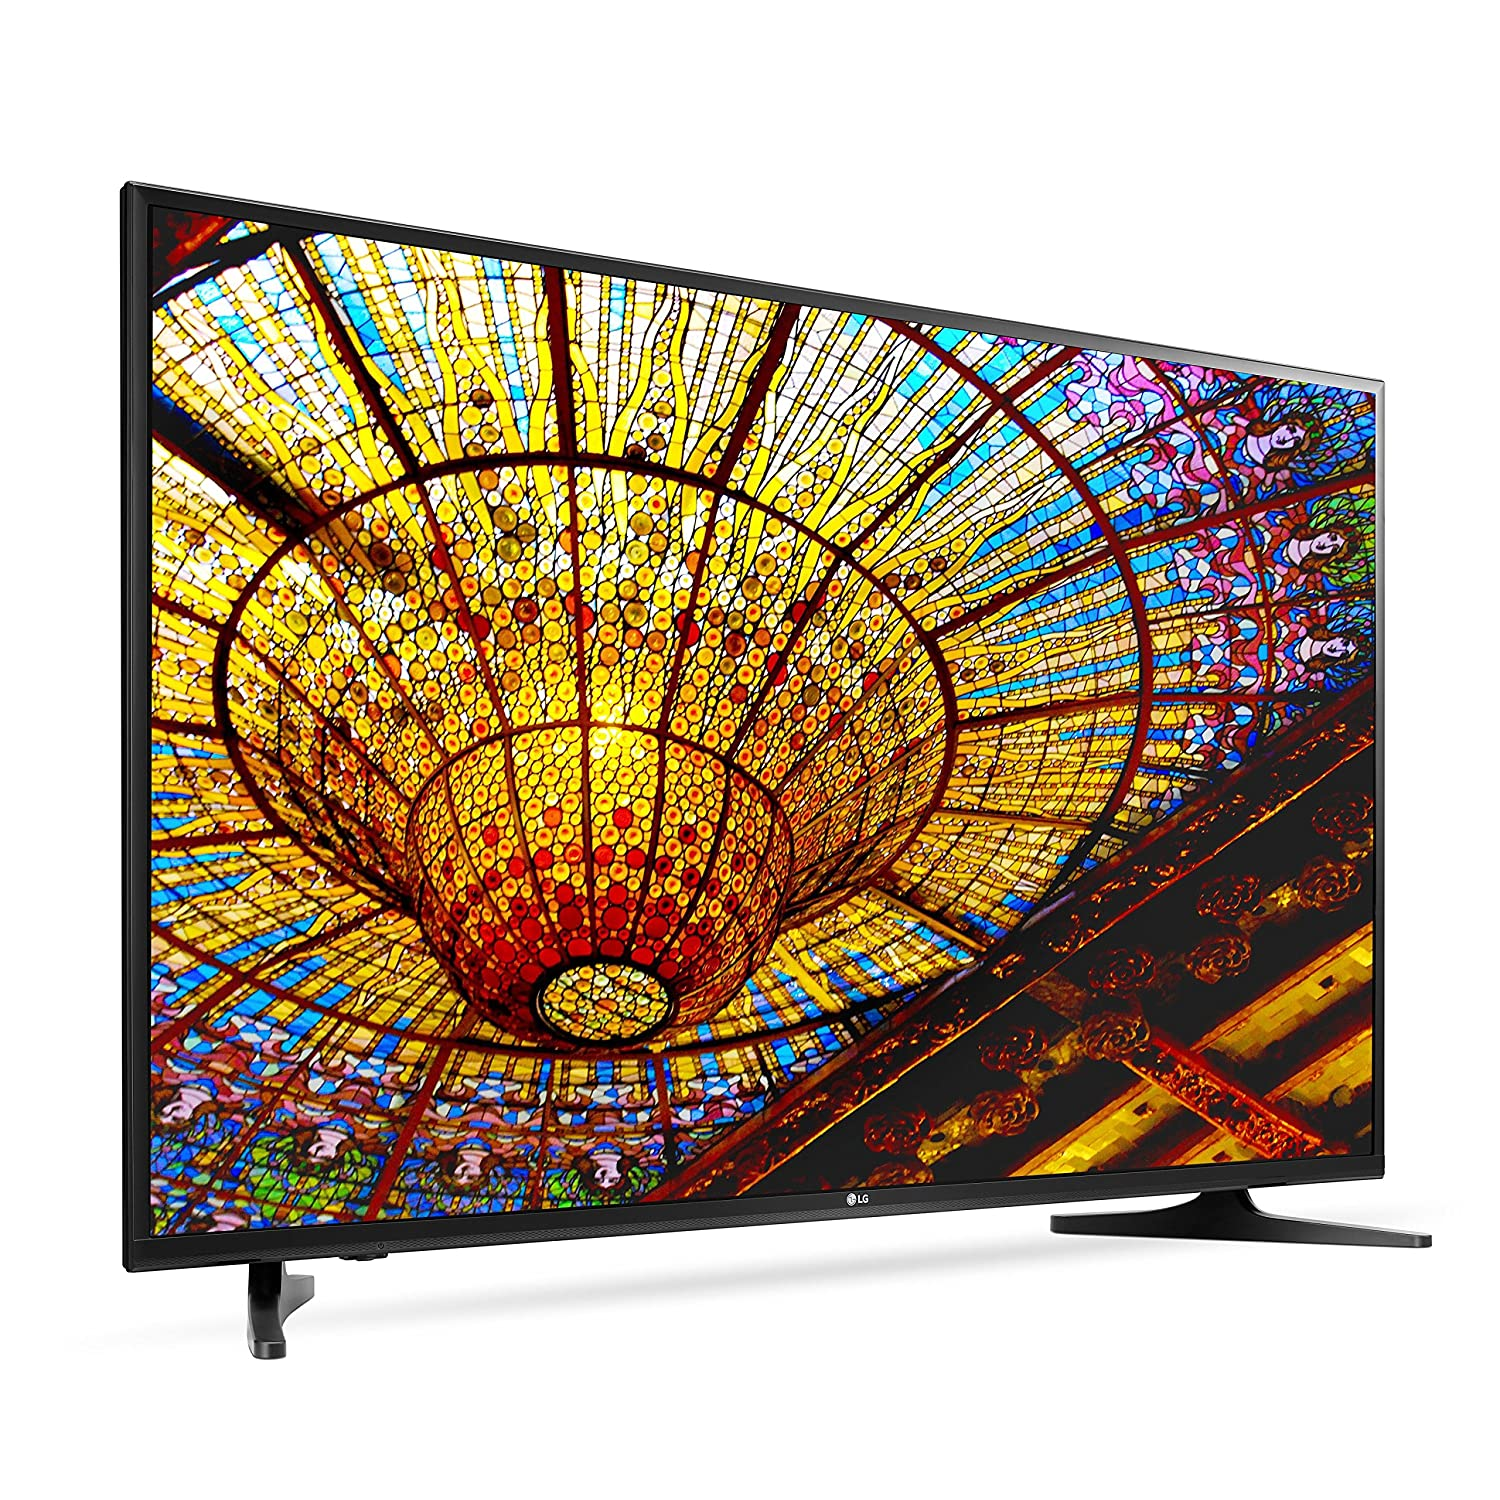 amazoncom lg electronics 50uh5500 50inch 4k ultra hd smart led tv model electronics